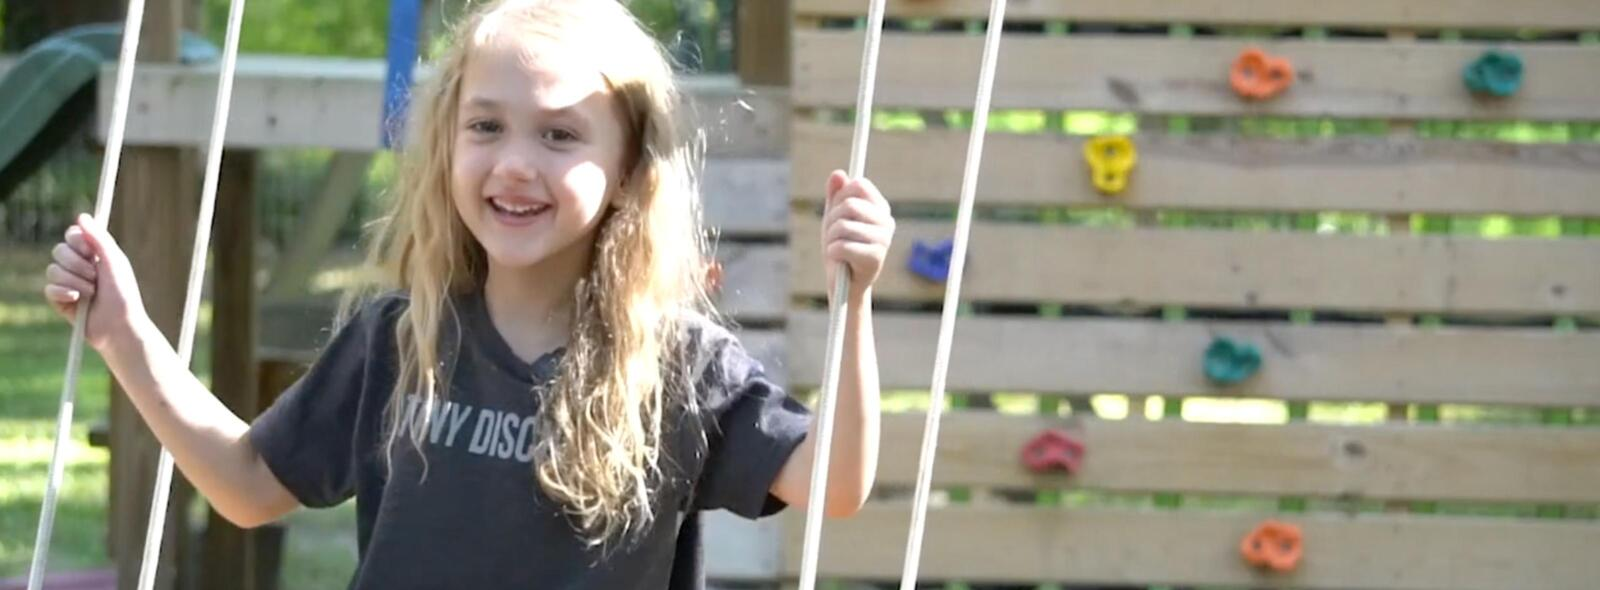 Annalee Full baptism Video during COVID